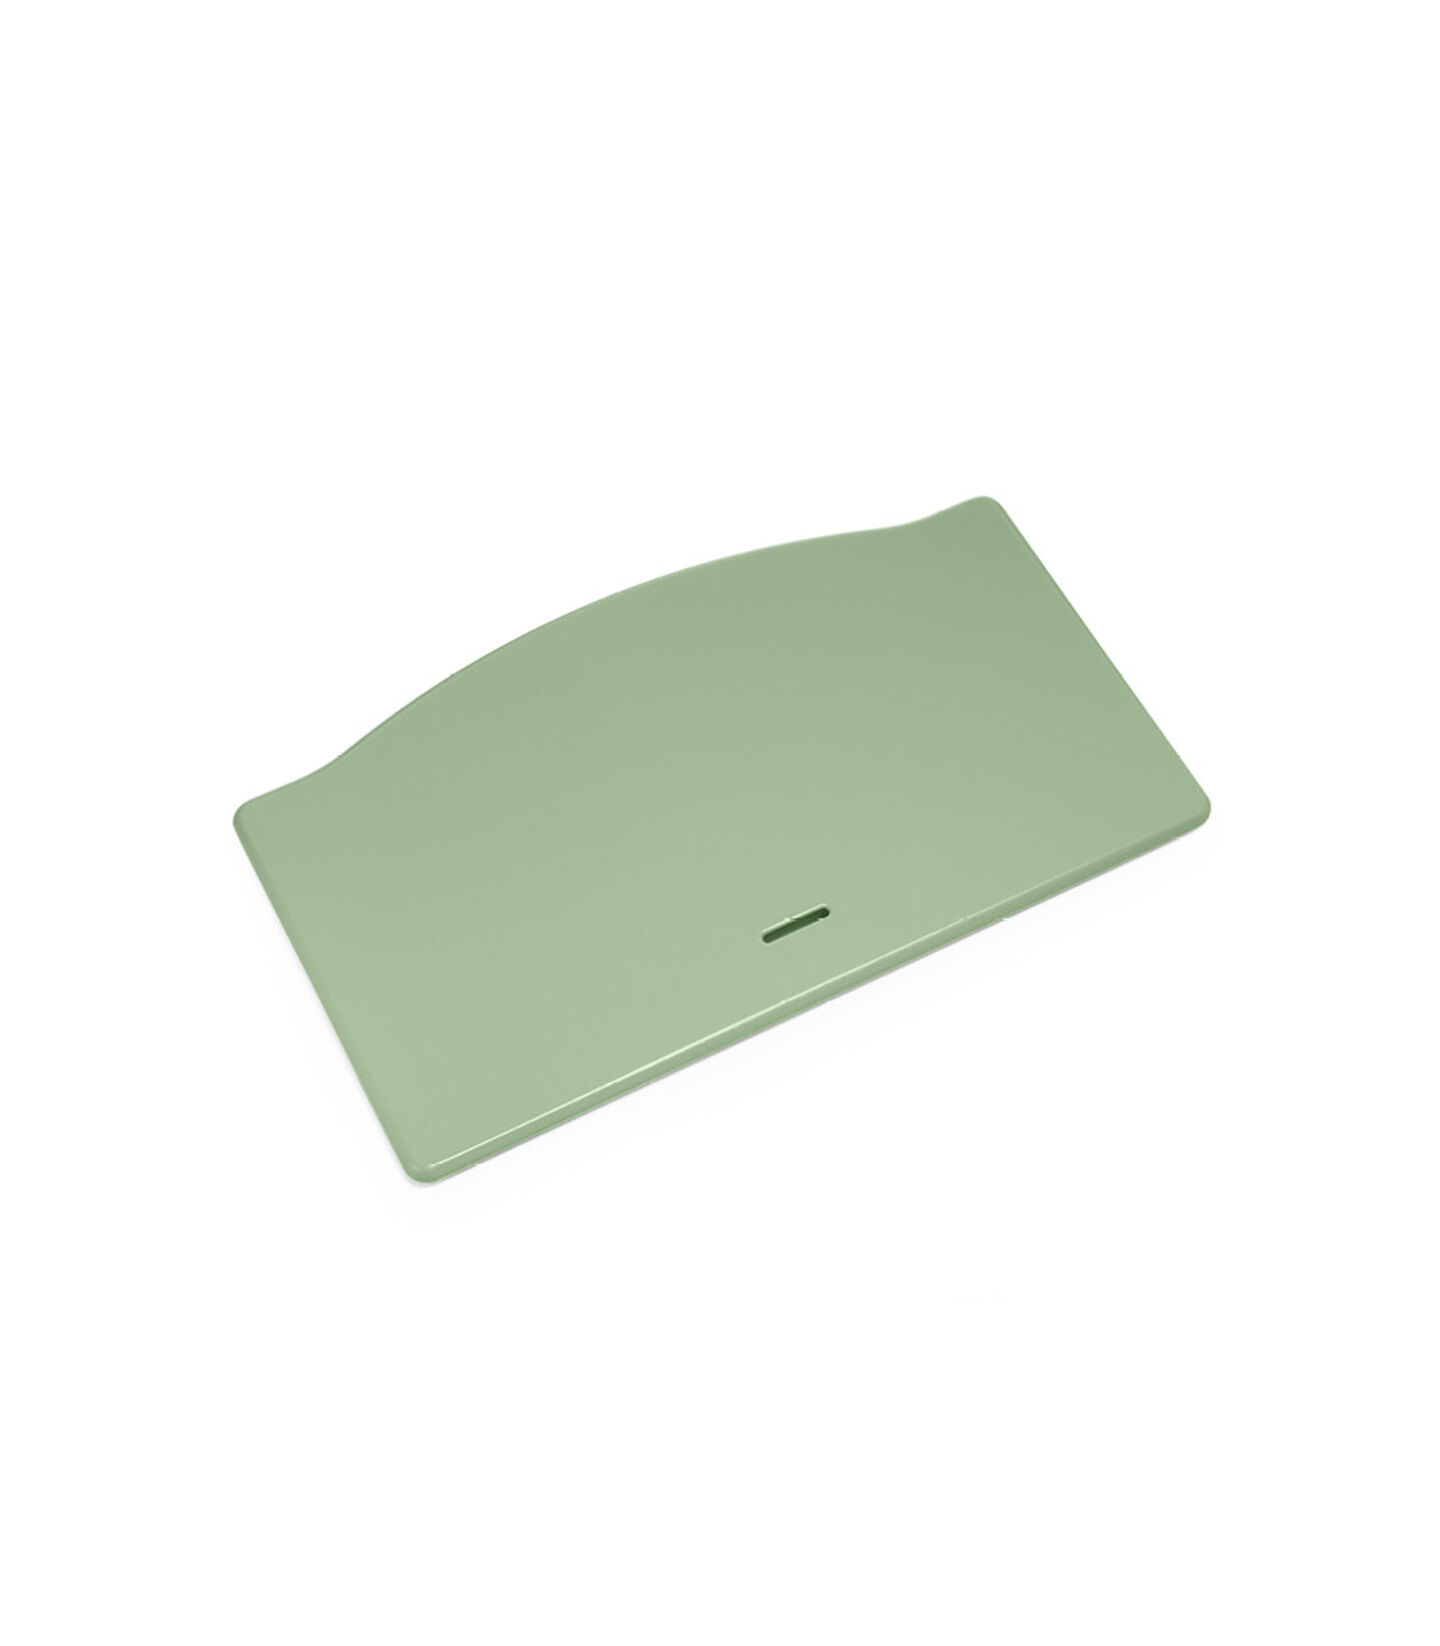 Tripp Trapp Seat Plate Moss Green (Spare part). view 1